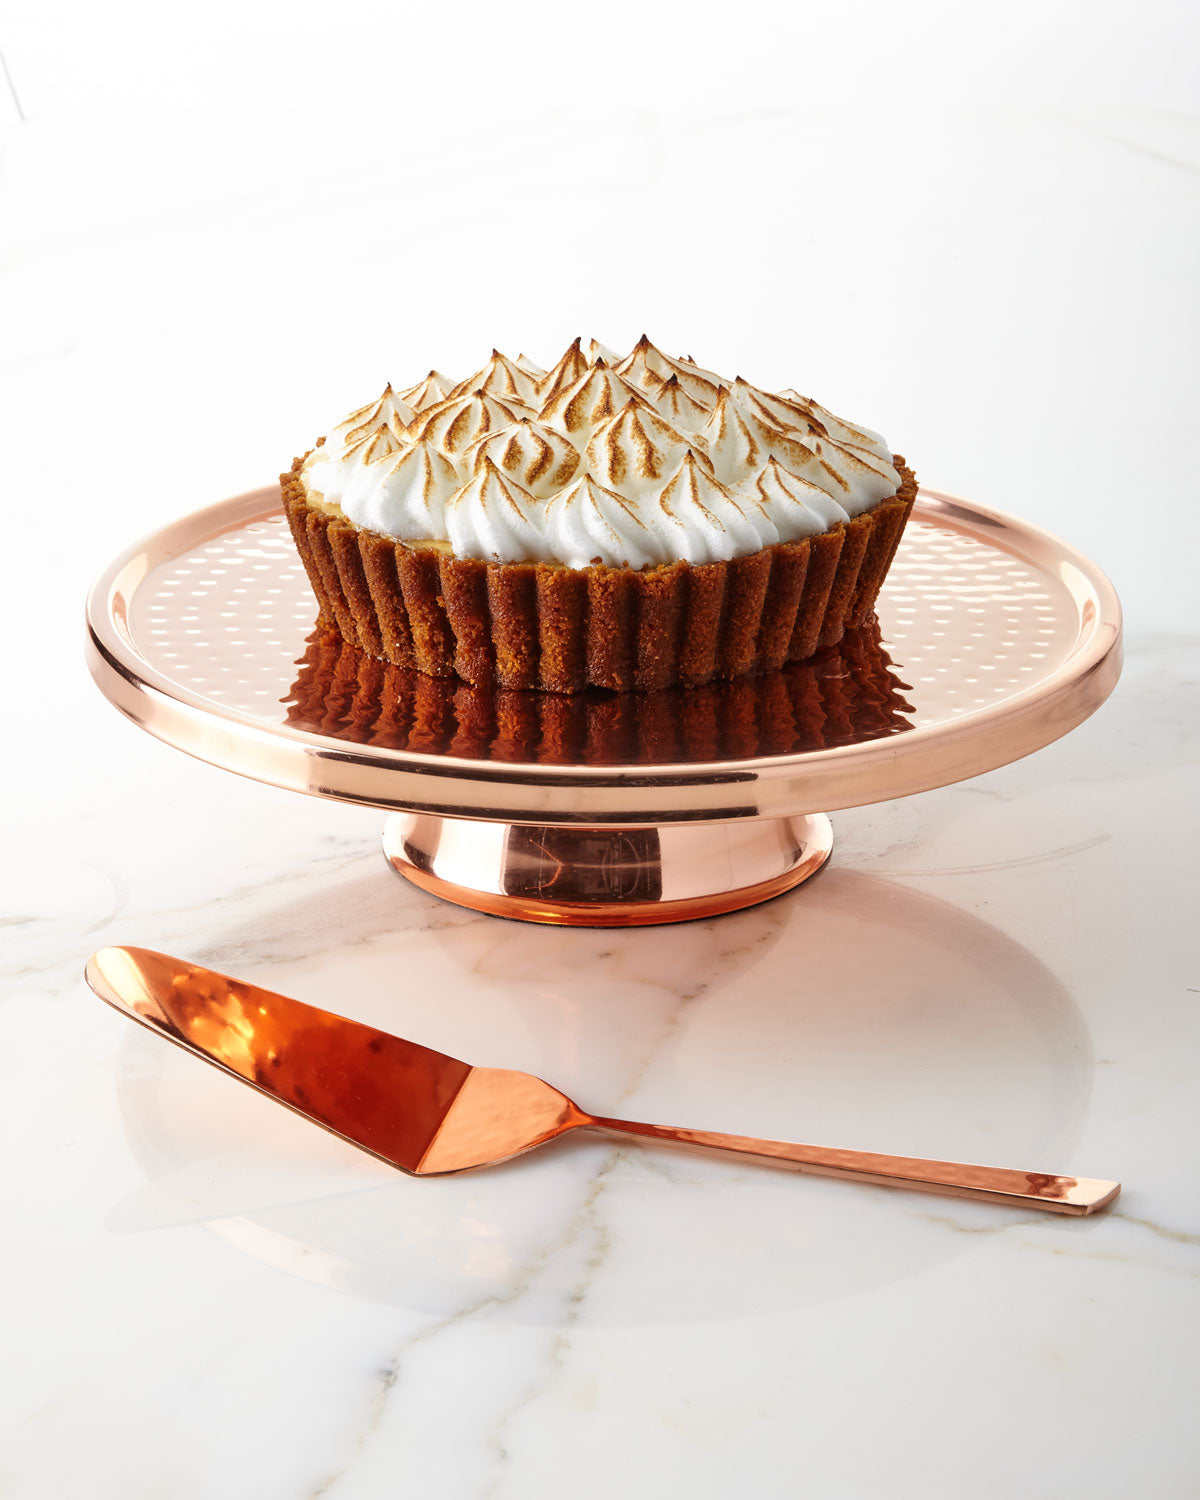 Cu0027est Copper Cake Plate and Server - Dessert Stand - Premier Home u0026 Gifts ...  sc 1 st  Premier Home and Gifts & Cu0027est Copper Cake Plate and Server